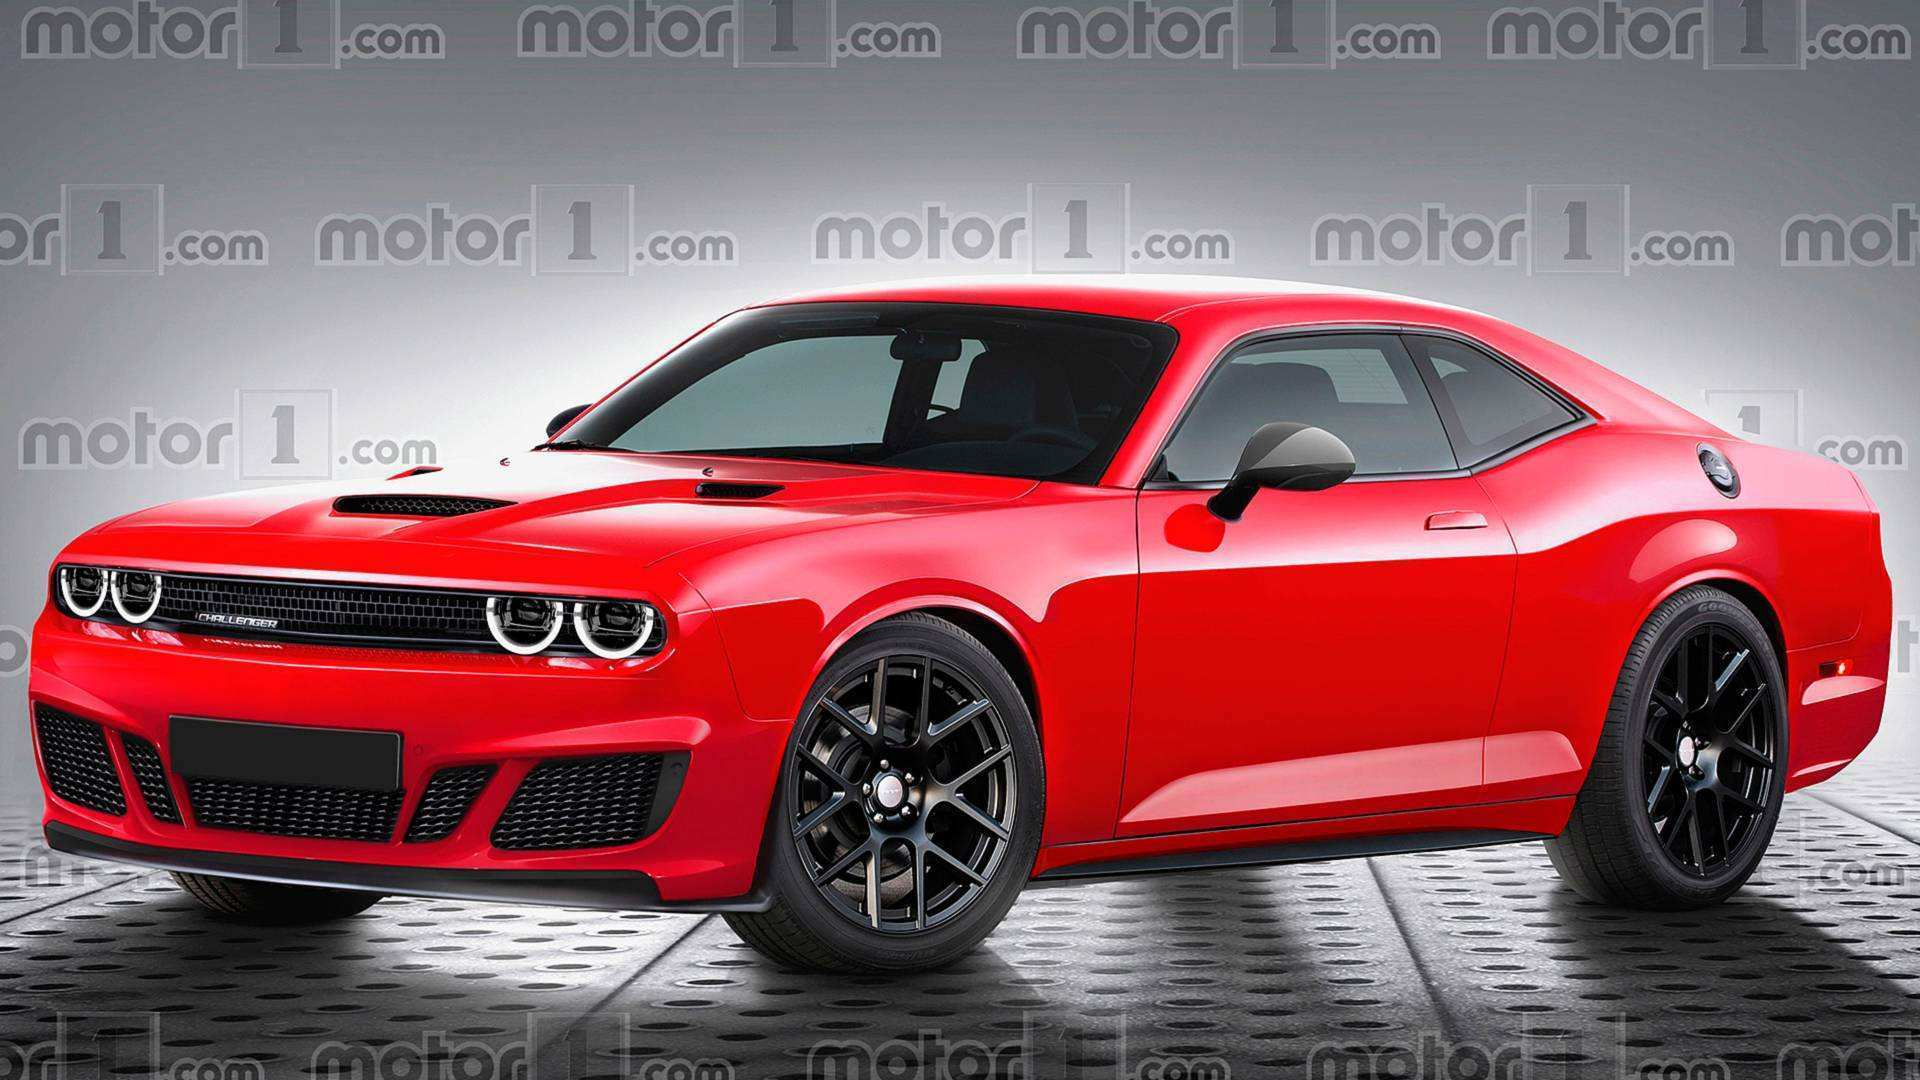 79 All New 2020 Dodge Charger Hellcat Rumors by 2020 Dodge Charger Hellcat